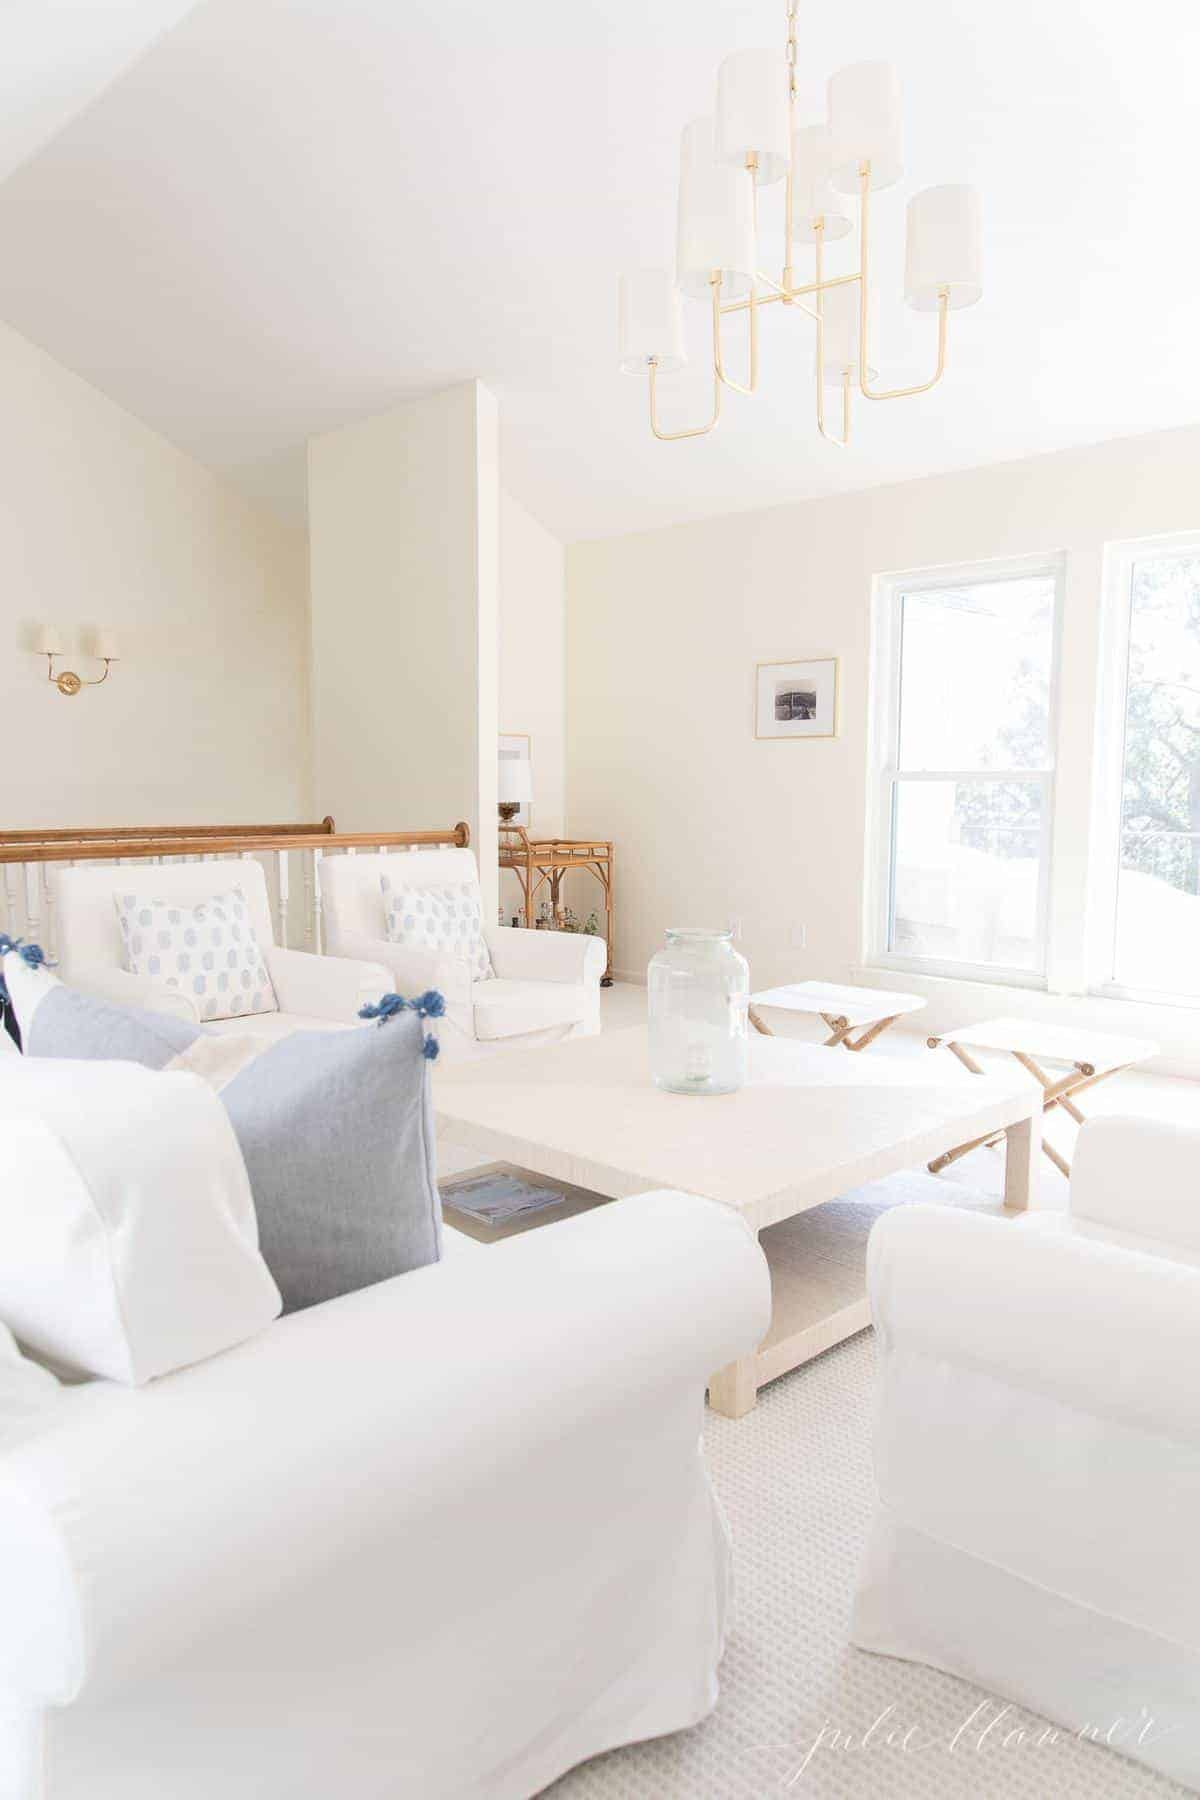 White living room with white sofas and large beige coffee table, brass chandelier above.